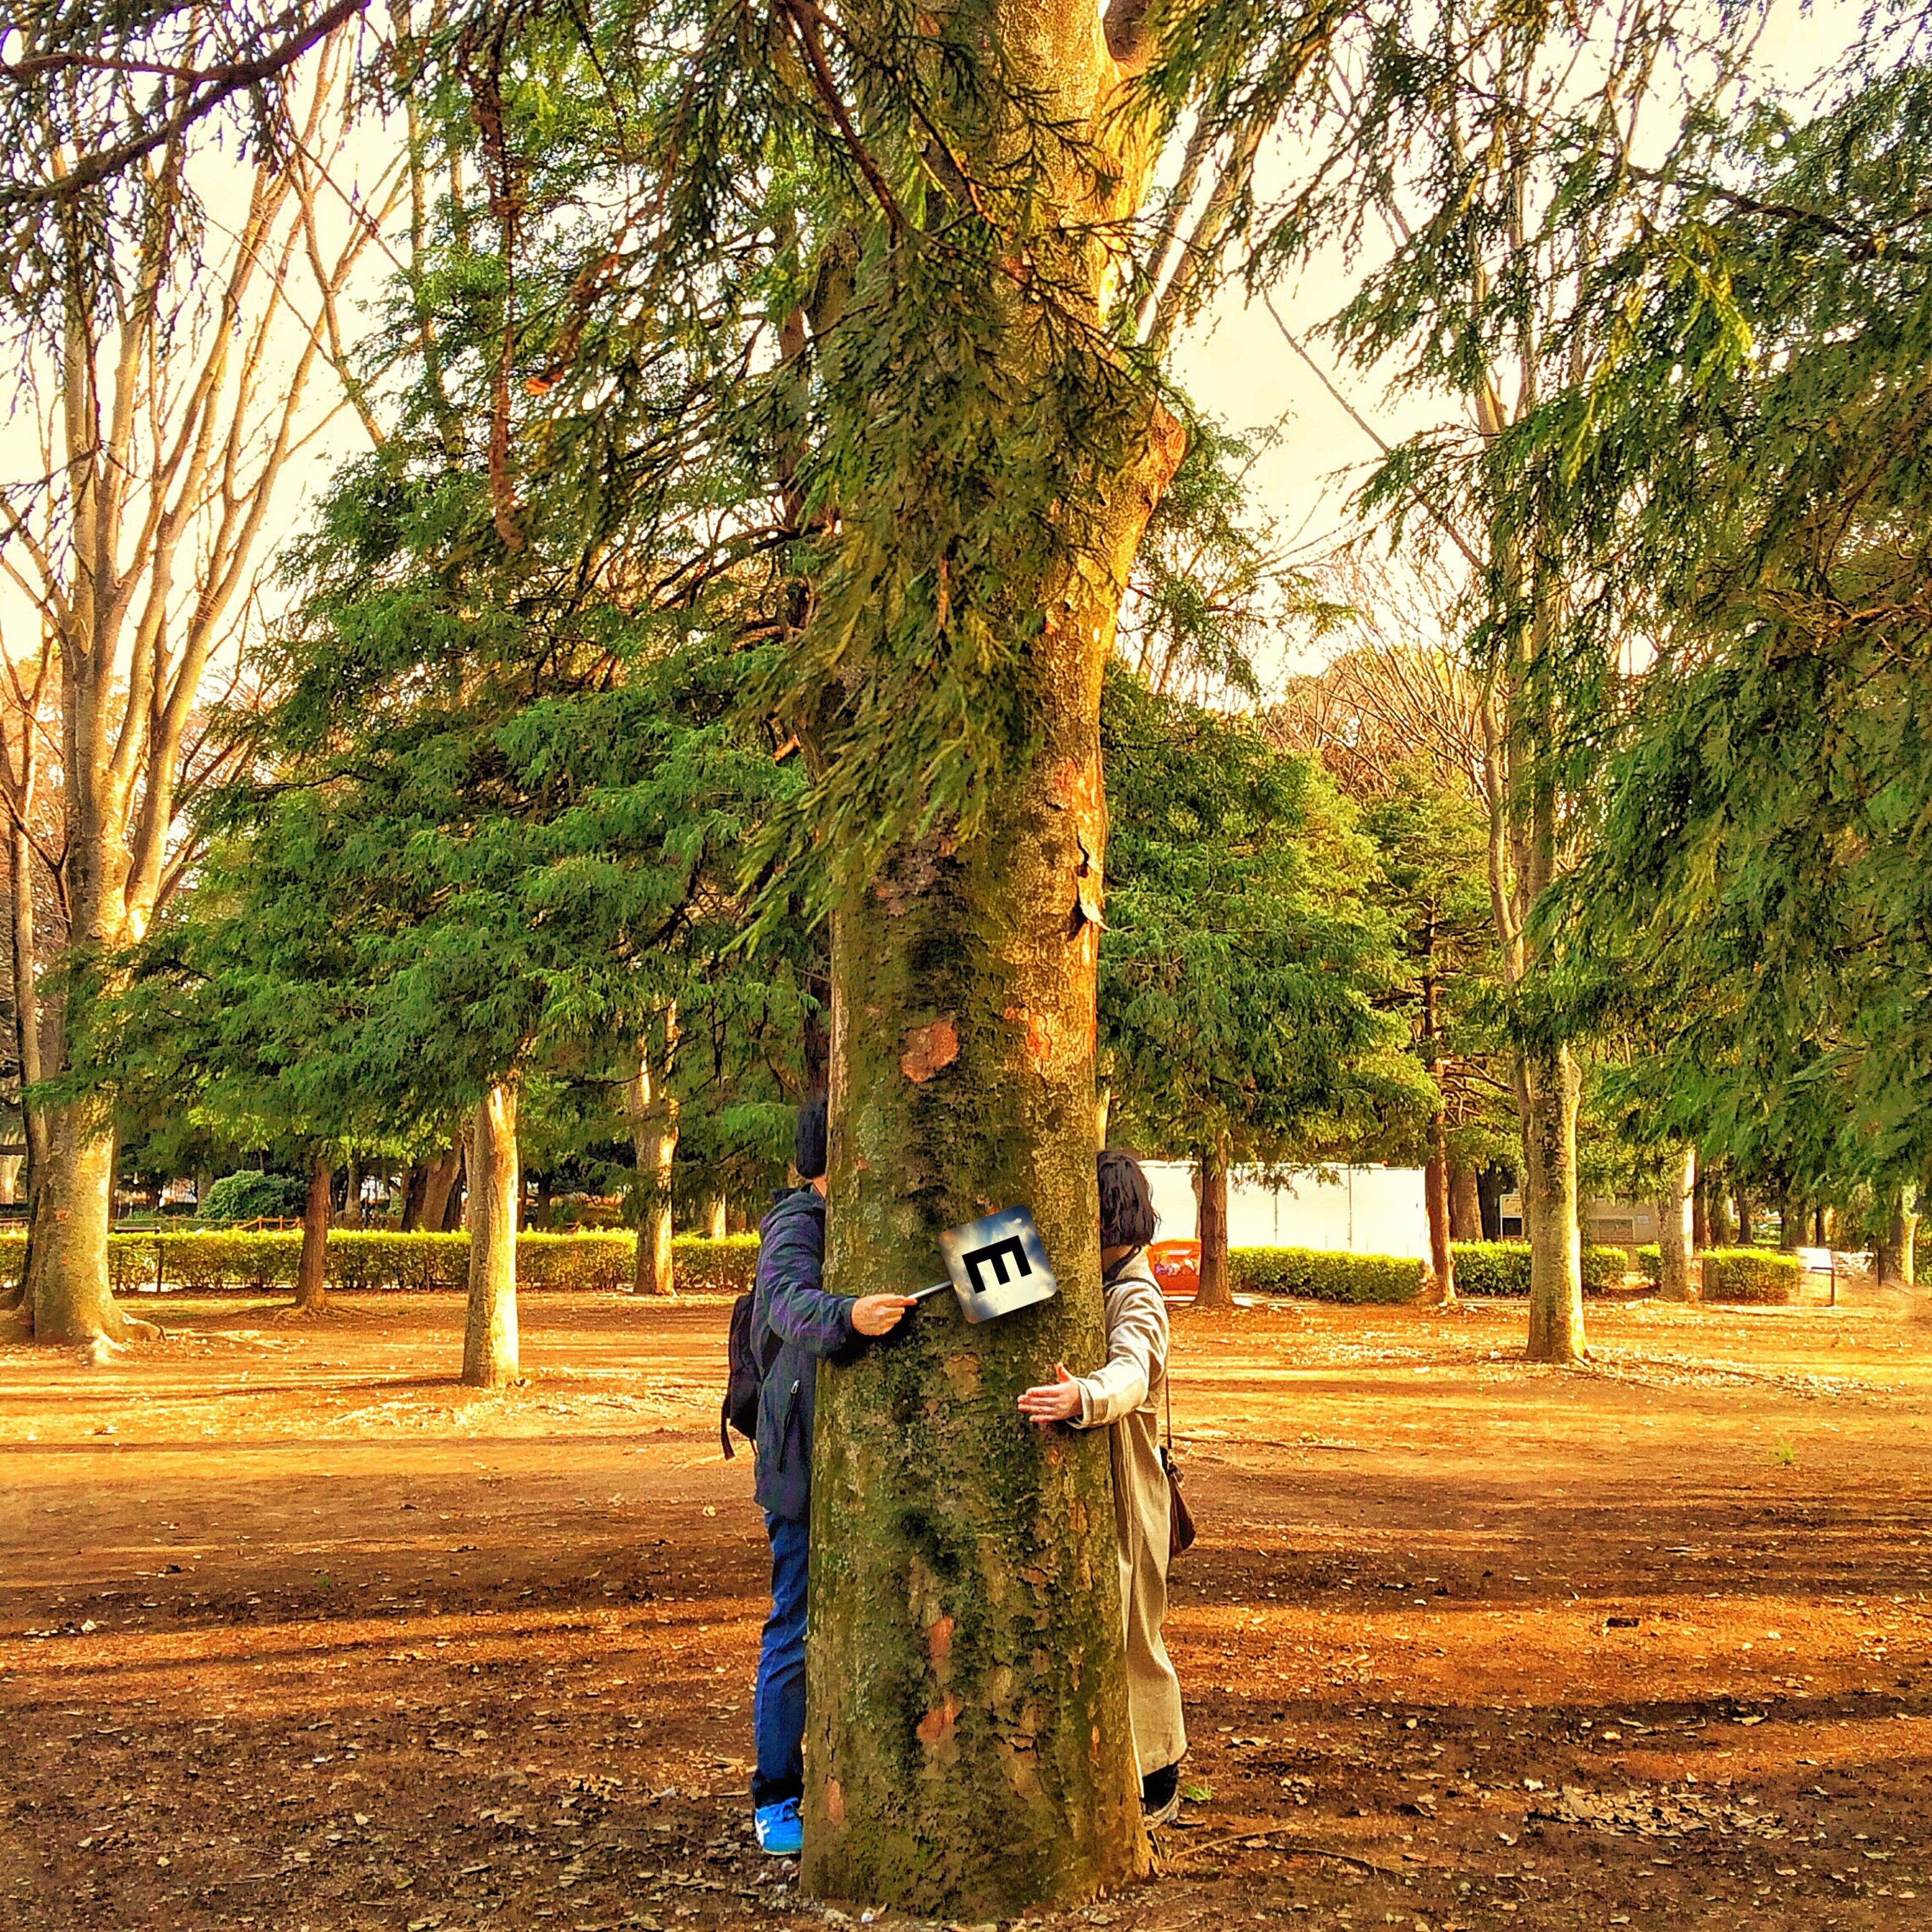 tree, lifestyles, leisure activity, casual clothing, full length, growth, day, nature, outdoors, tree trunk, change, tranquility, park, landscape